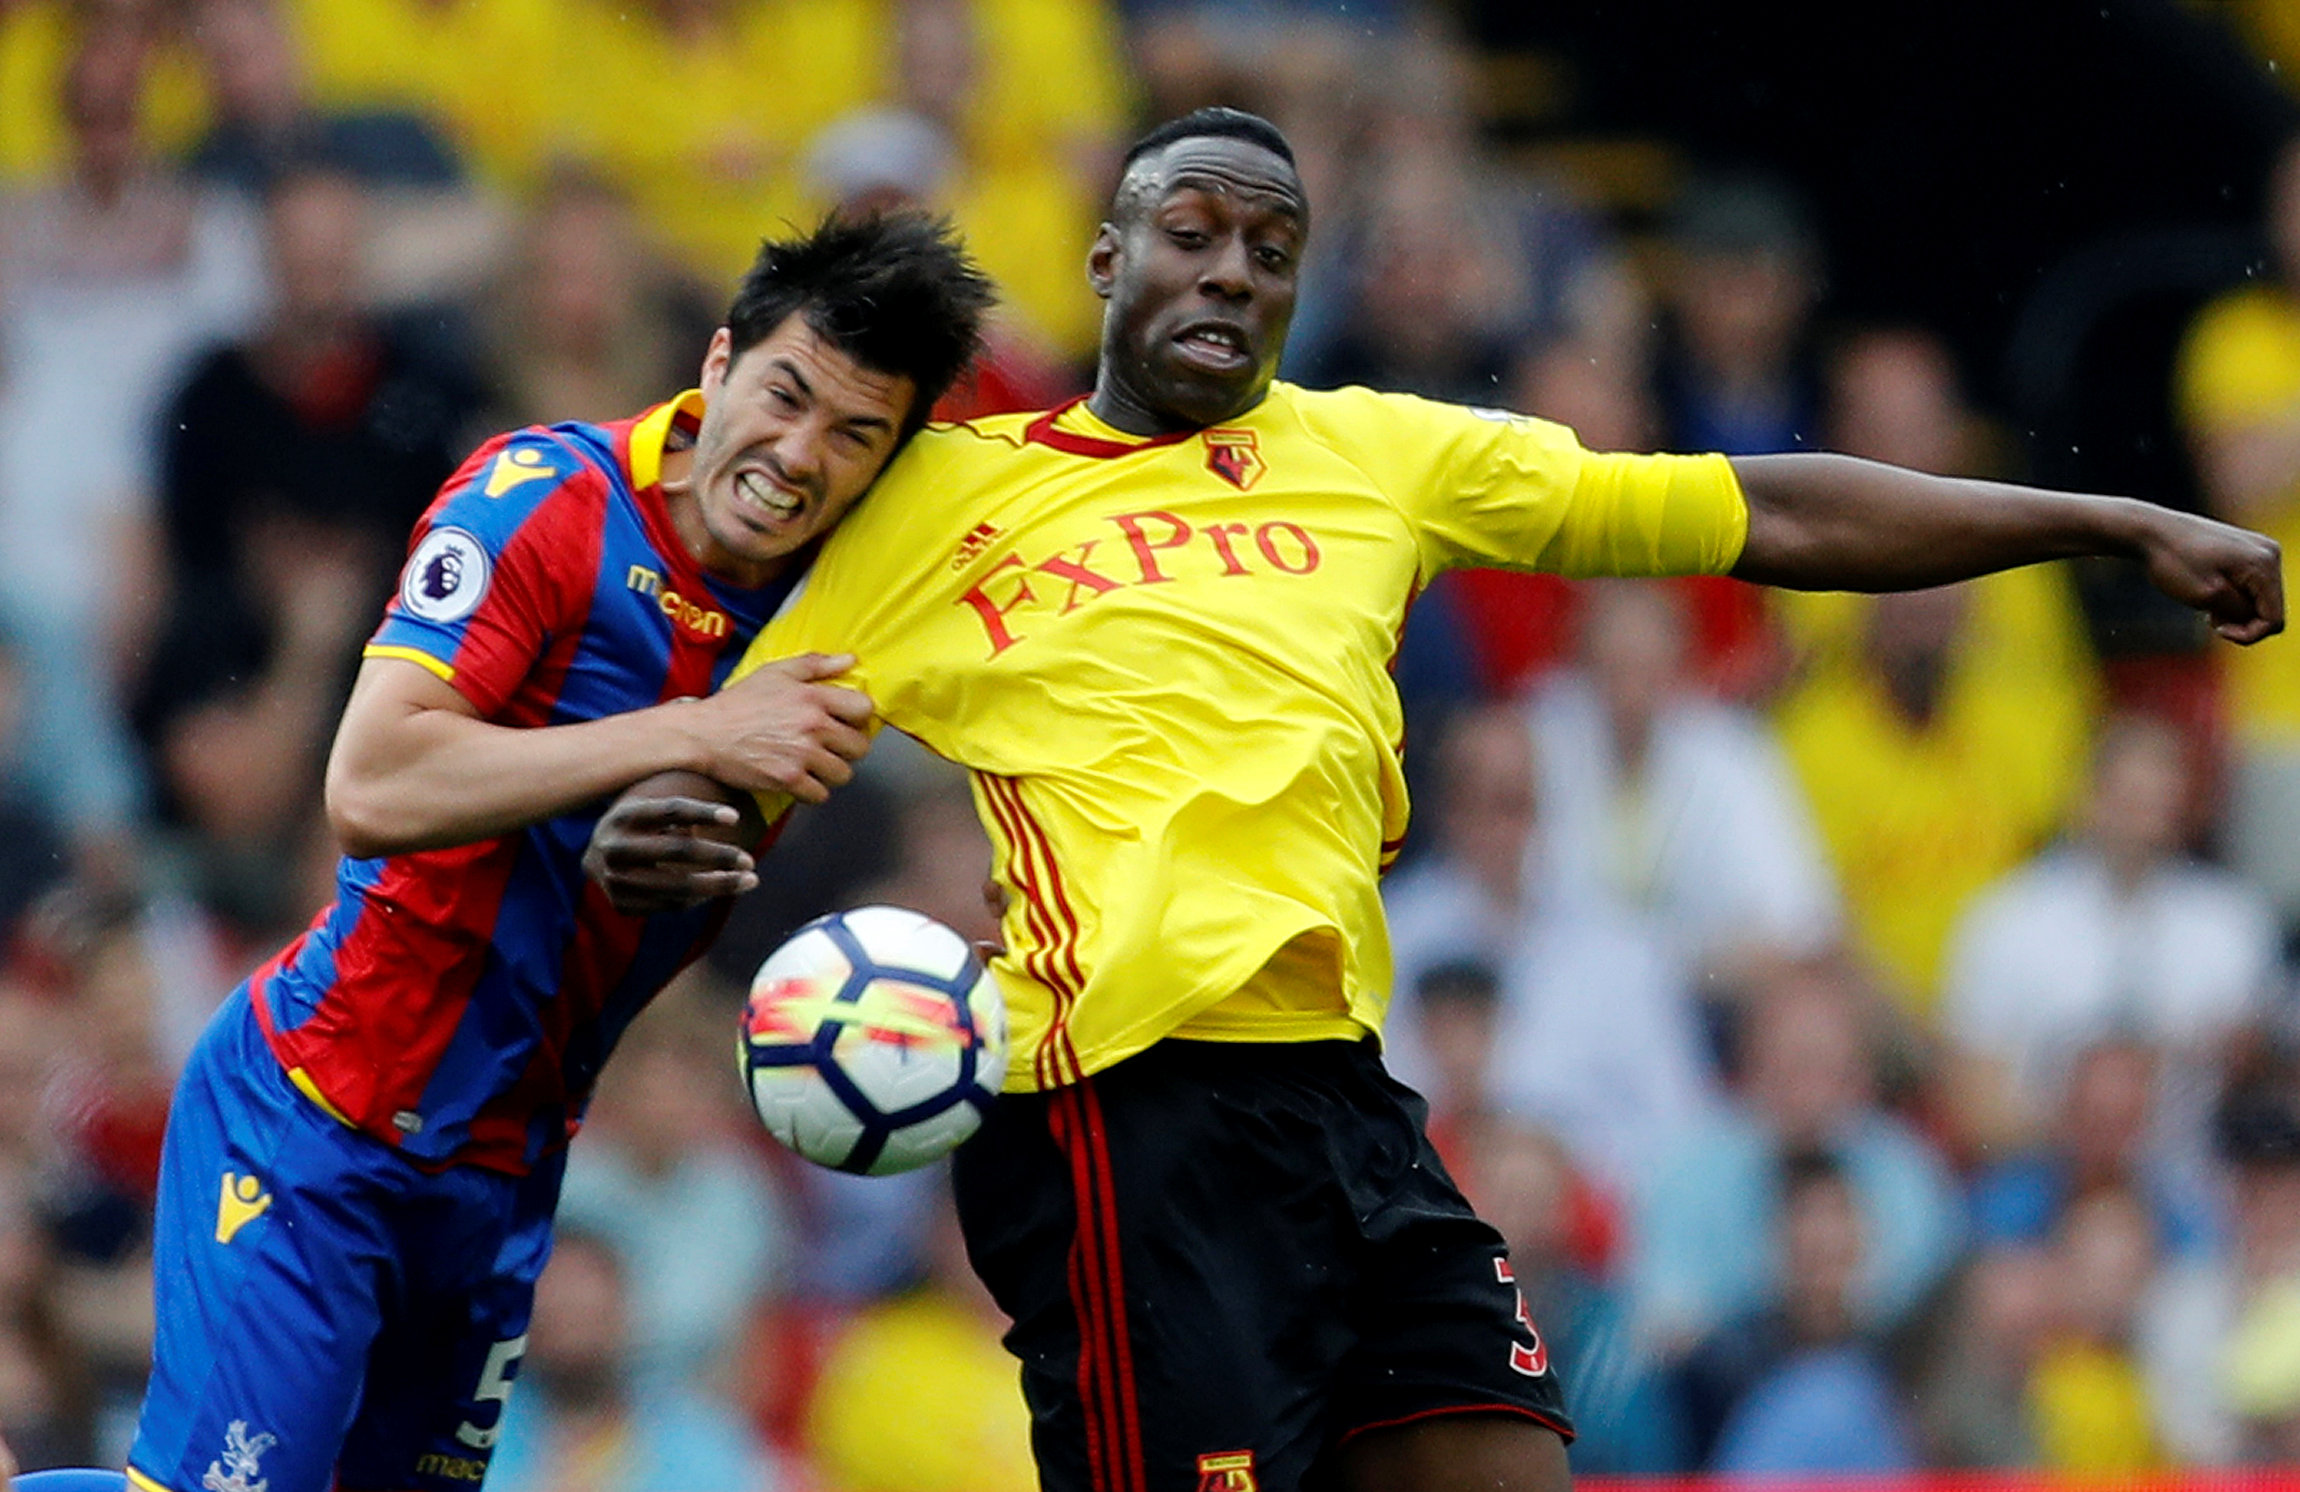 Stefano Okaka struggled for game time this season. Picture: Action Images